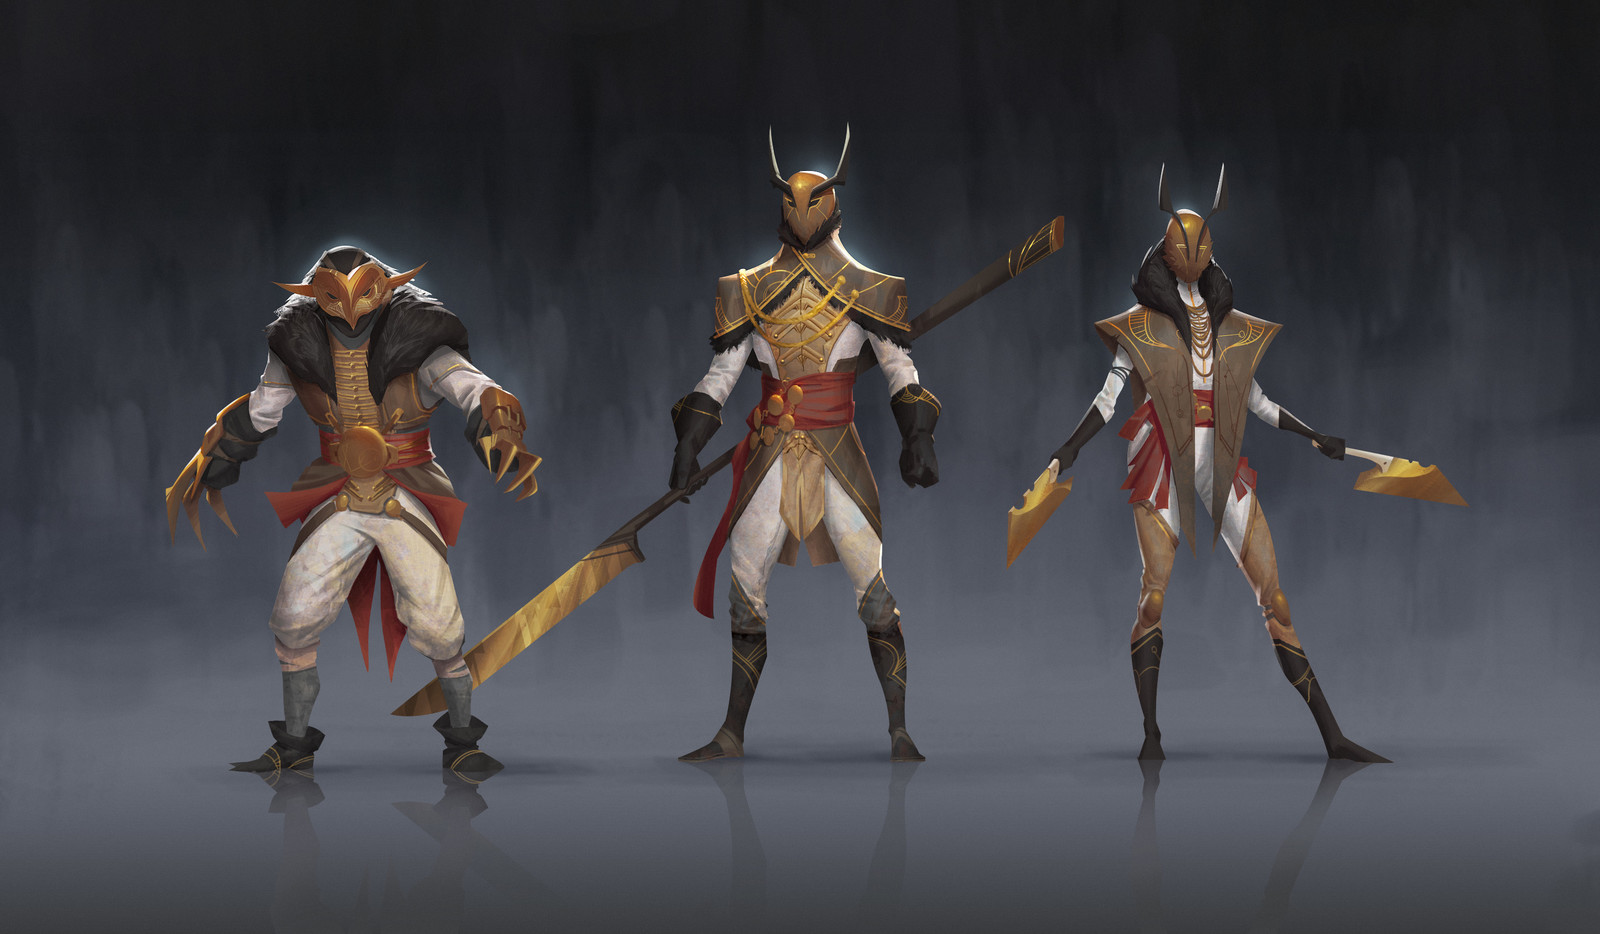 OWL Soldiers (Absolver Fan-art)